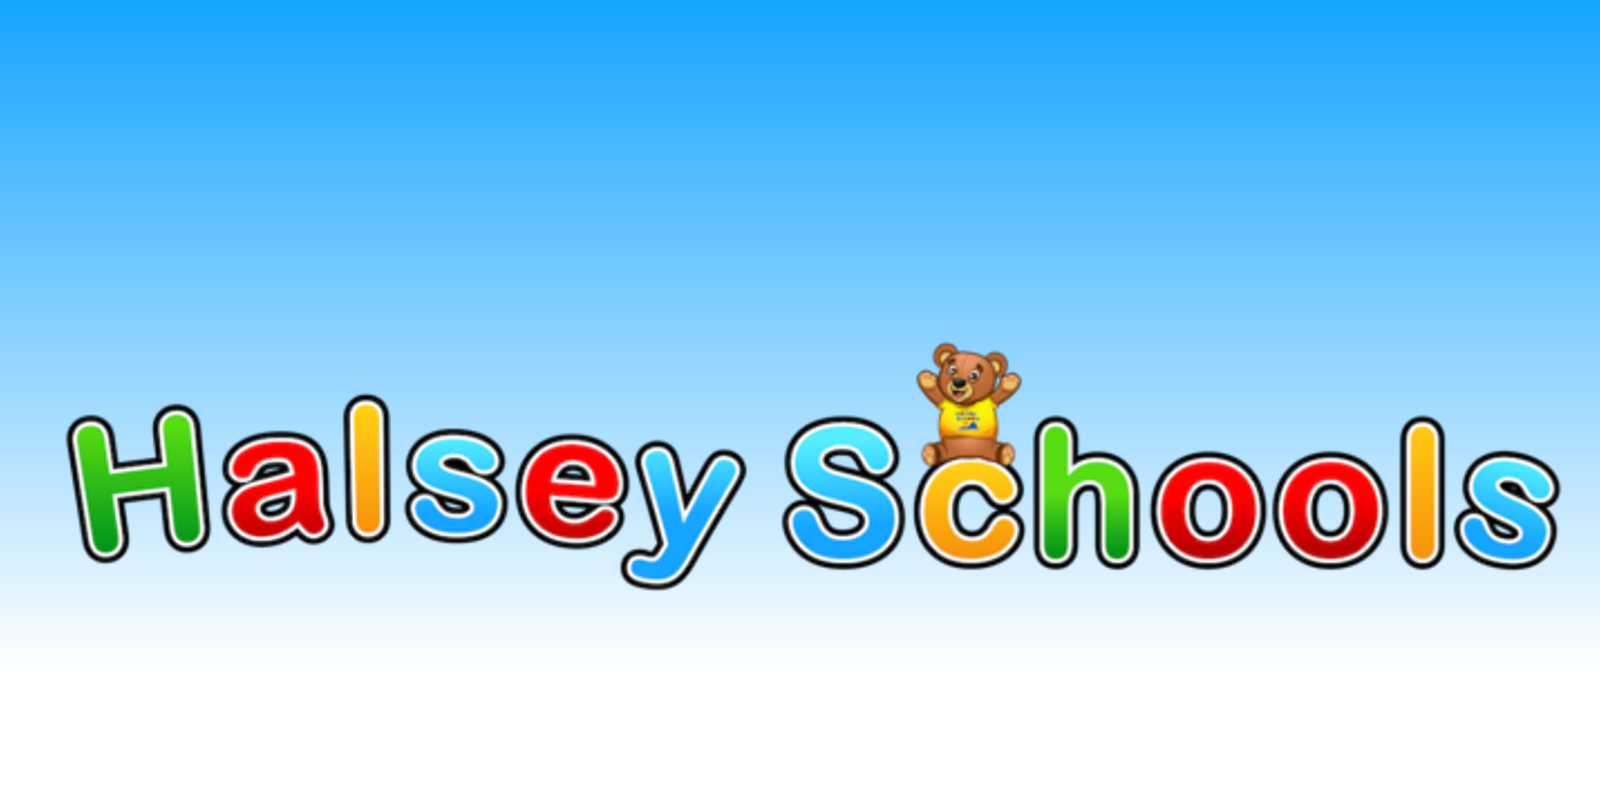 Halsey Schools Preschool Infant & Toddler Care in Woodland Hills